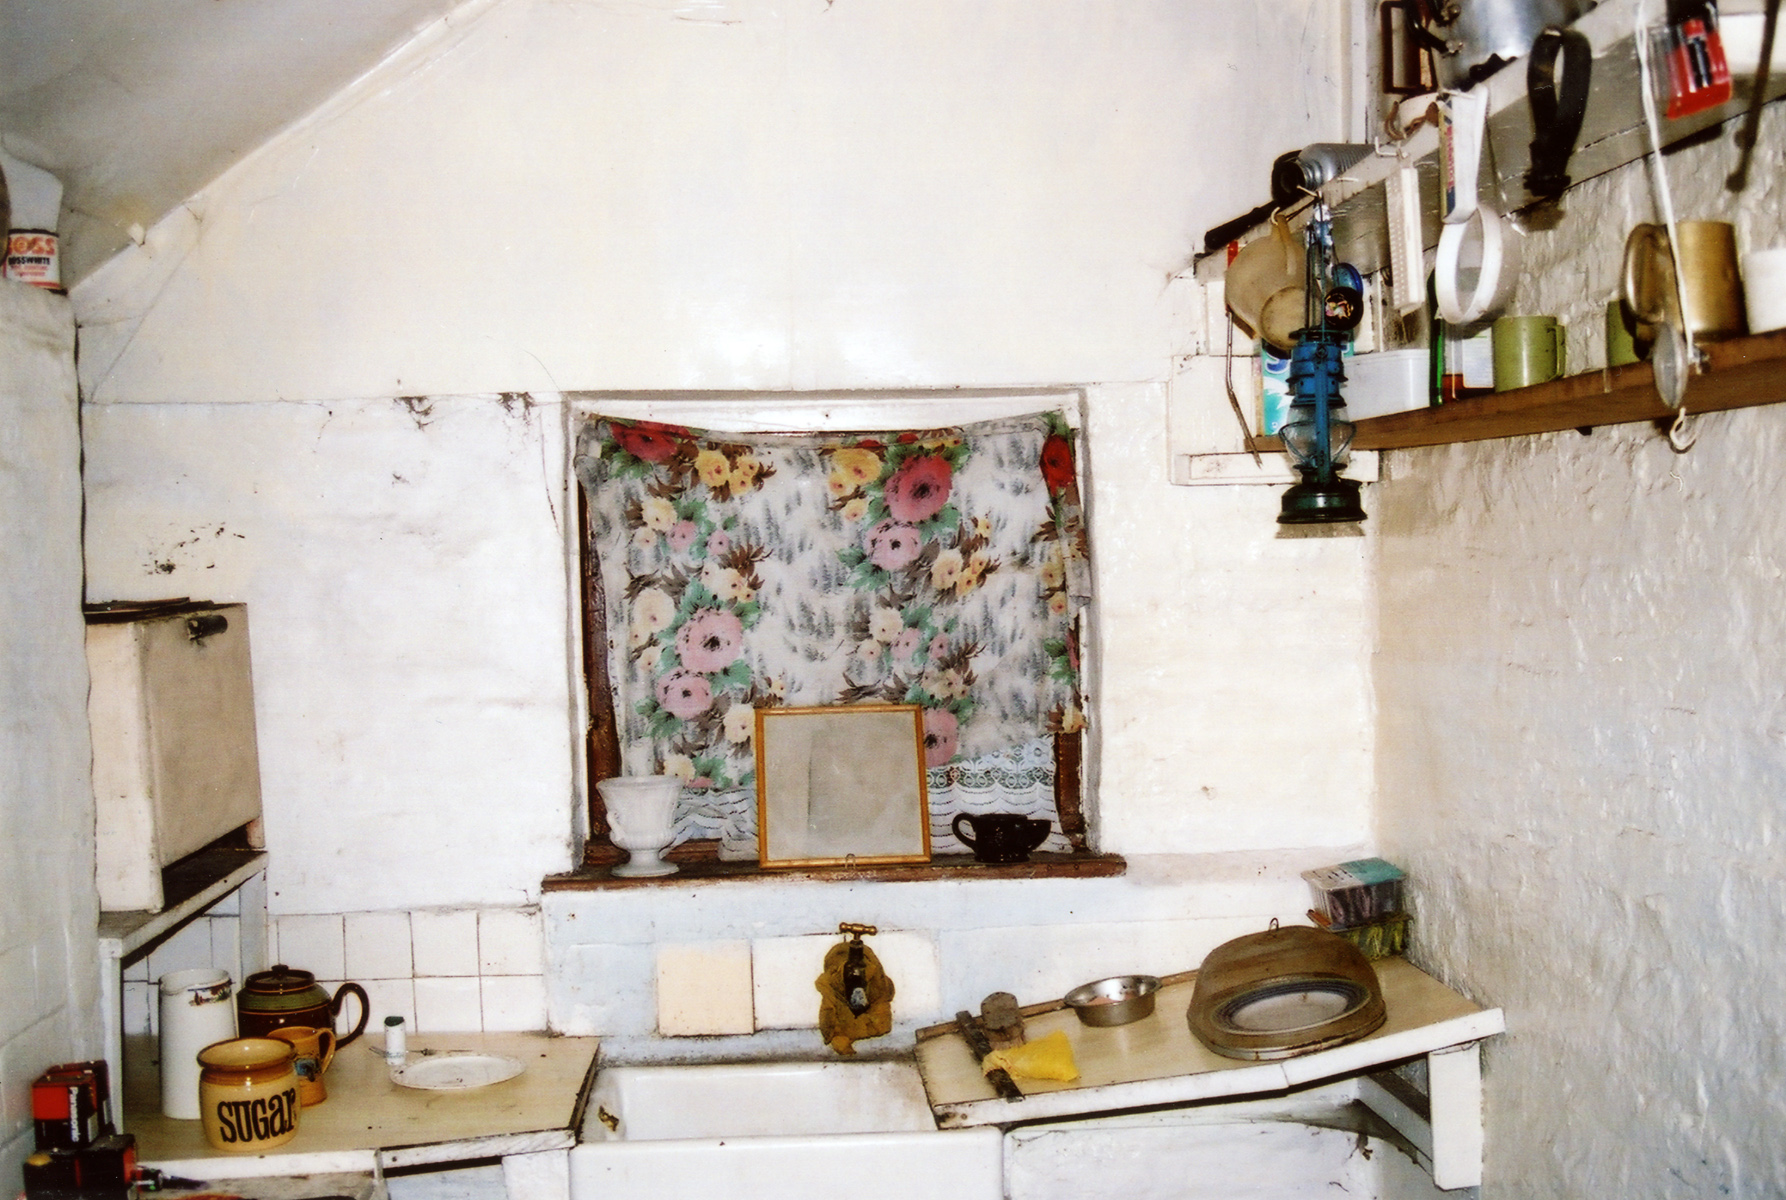 Interior of the kitchen at the Lock House 17